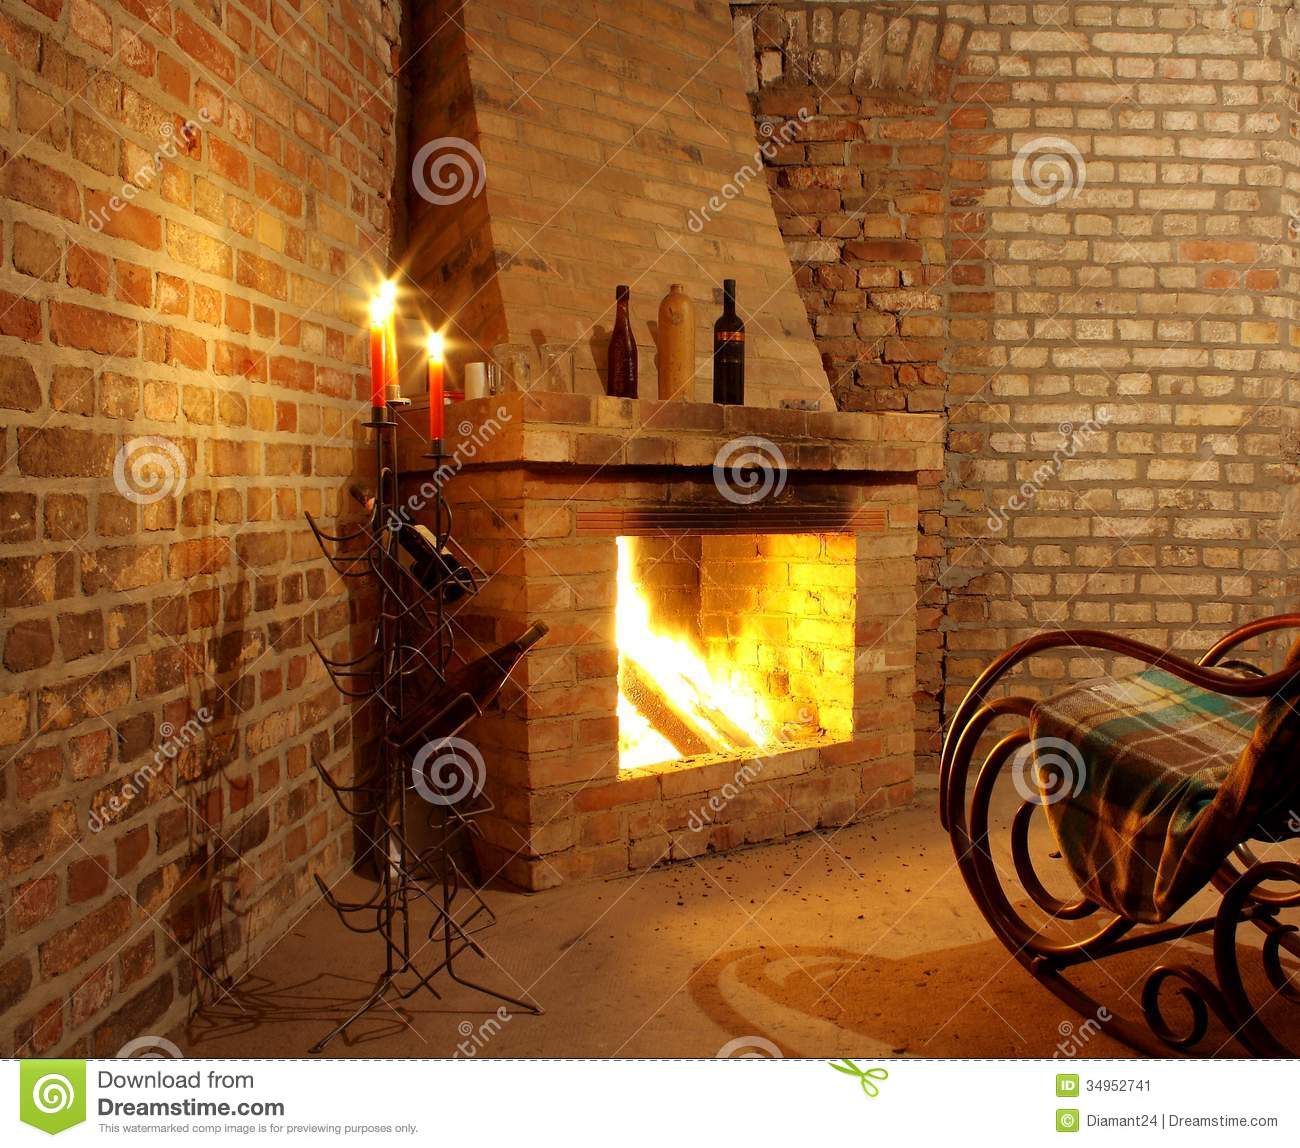 Vintage Interior With Rocking Chair By Fireplace And Candles Stock Image Image 34952741